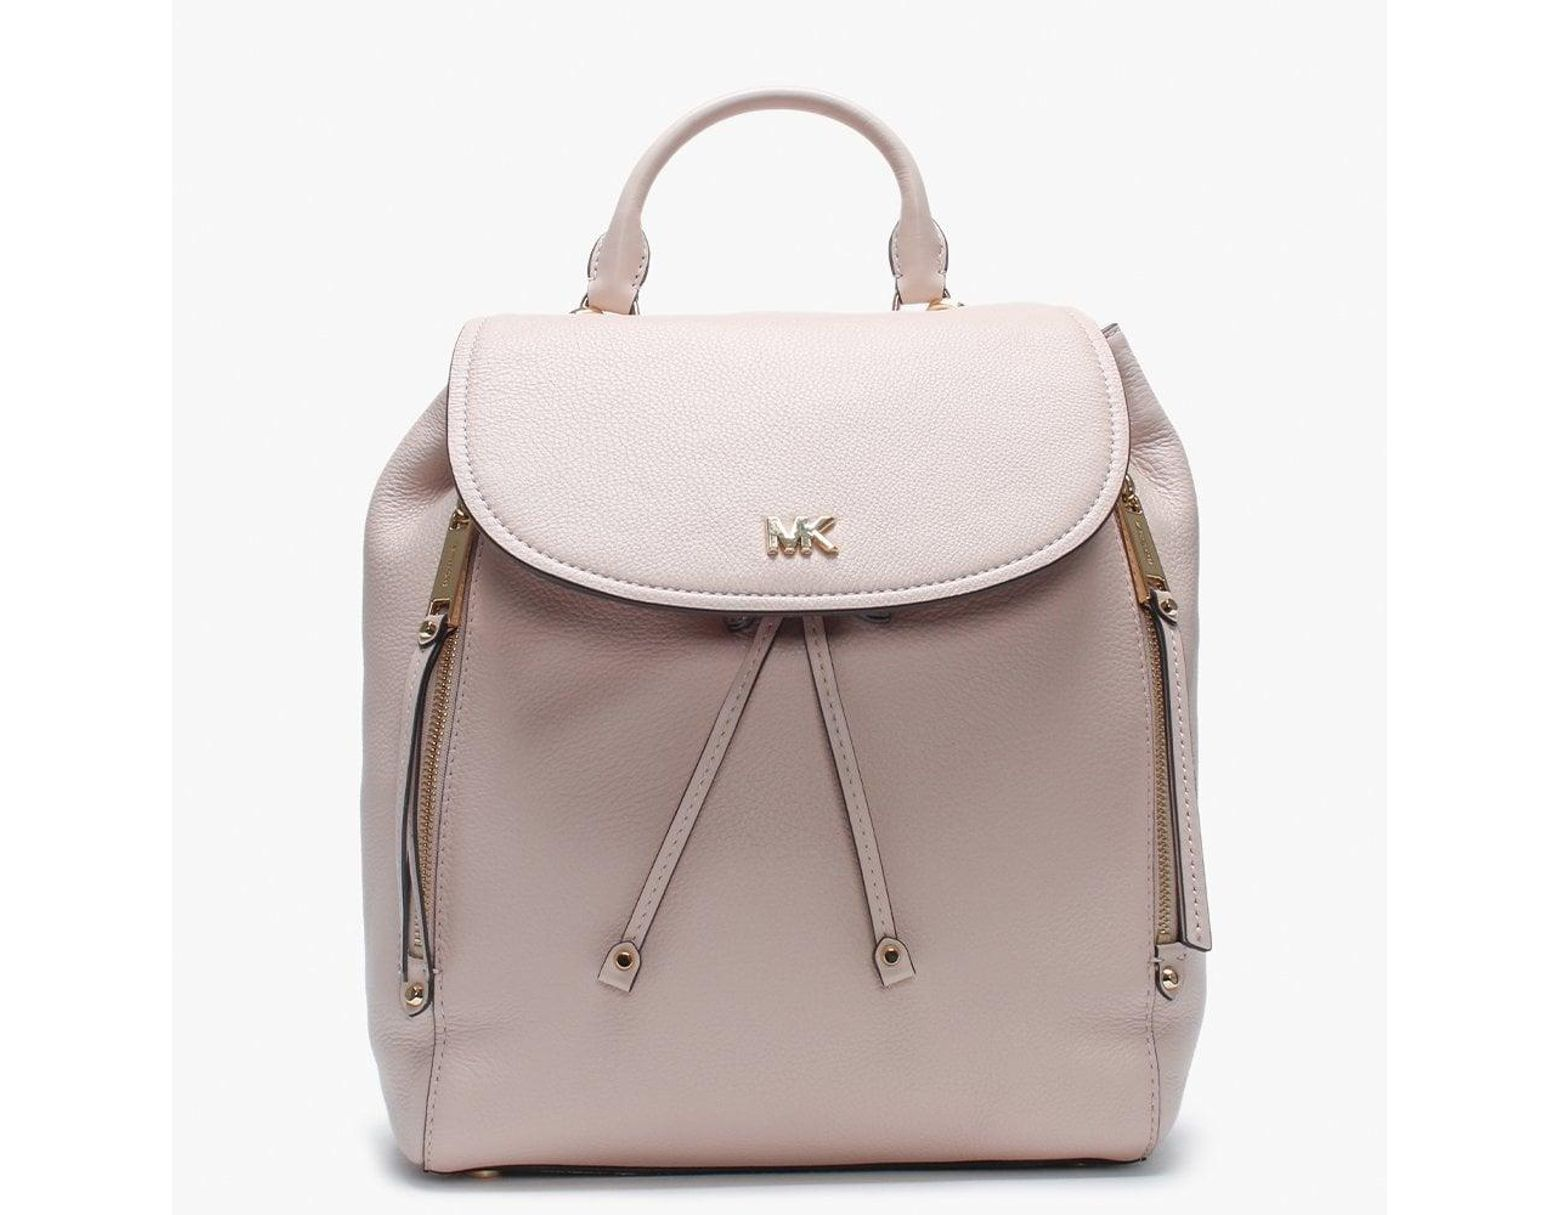 99d86fbd649abe Michael Kors Medium Evie Soft Pink Leather Backpack in Pink - Lyst